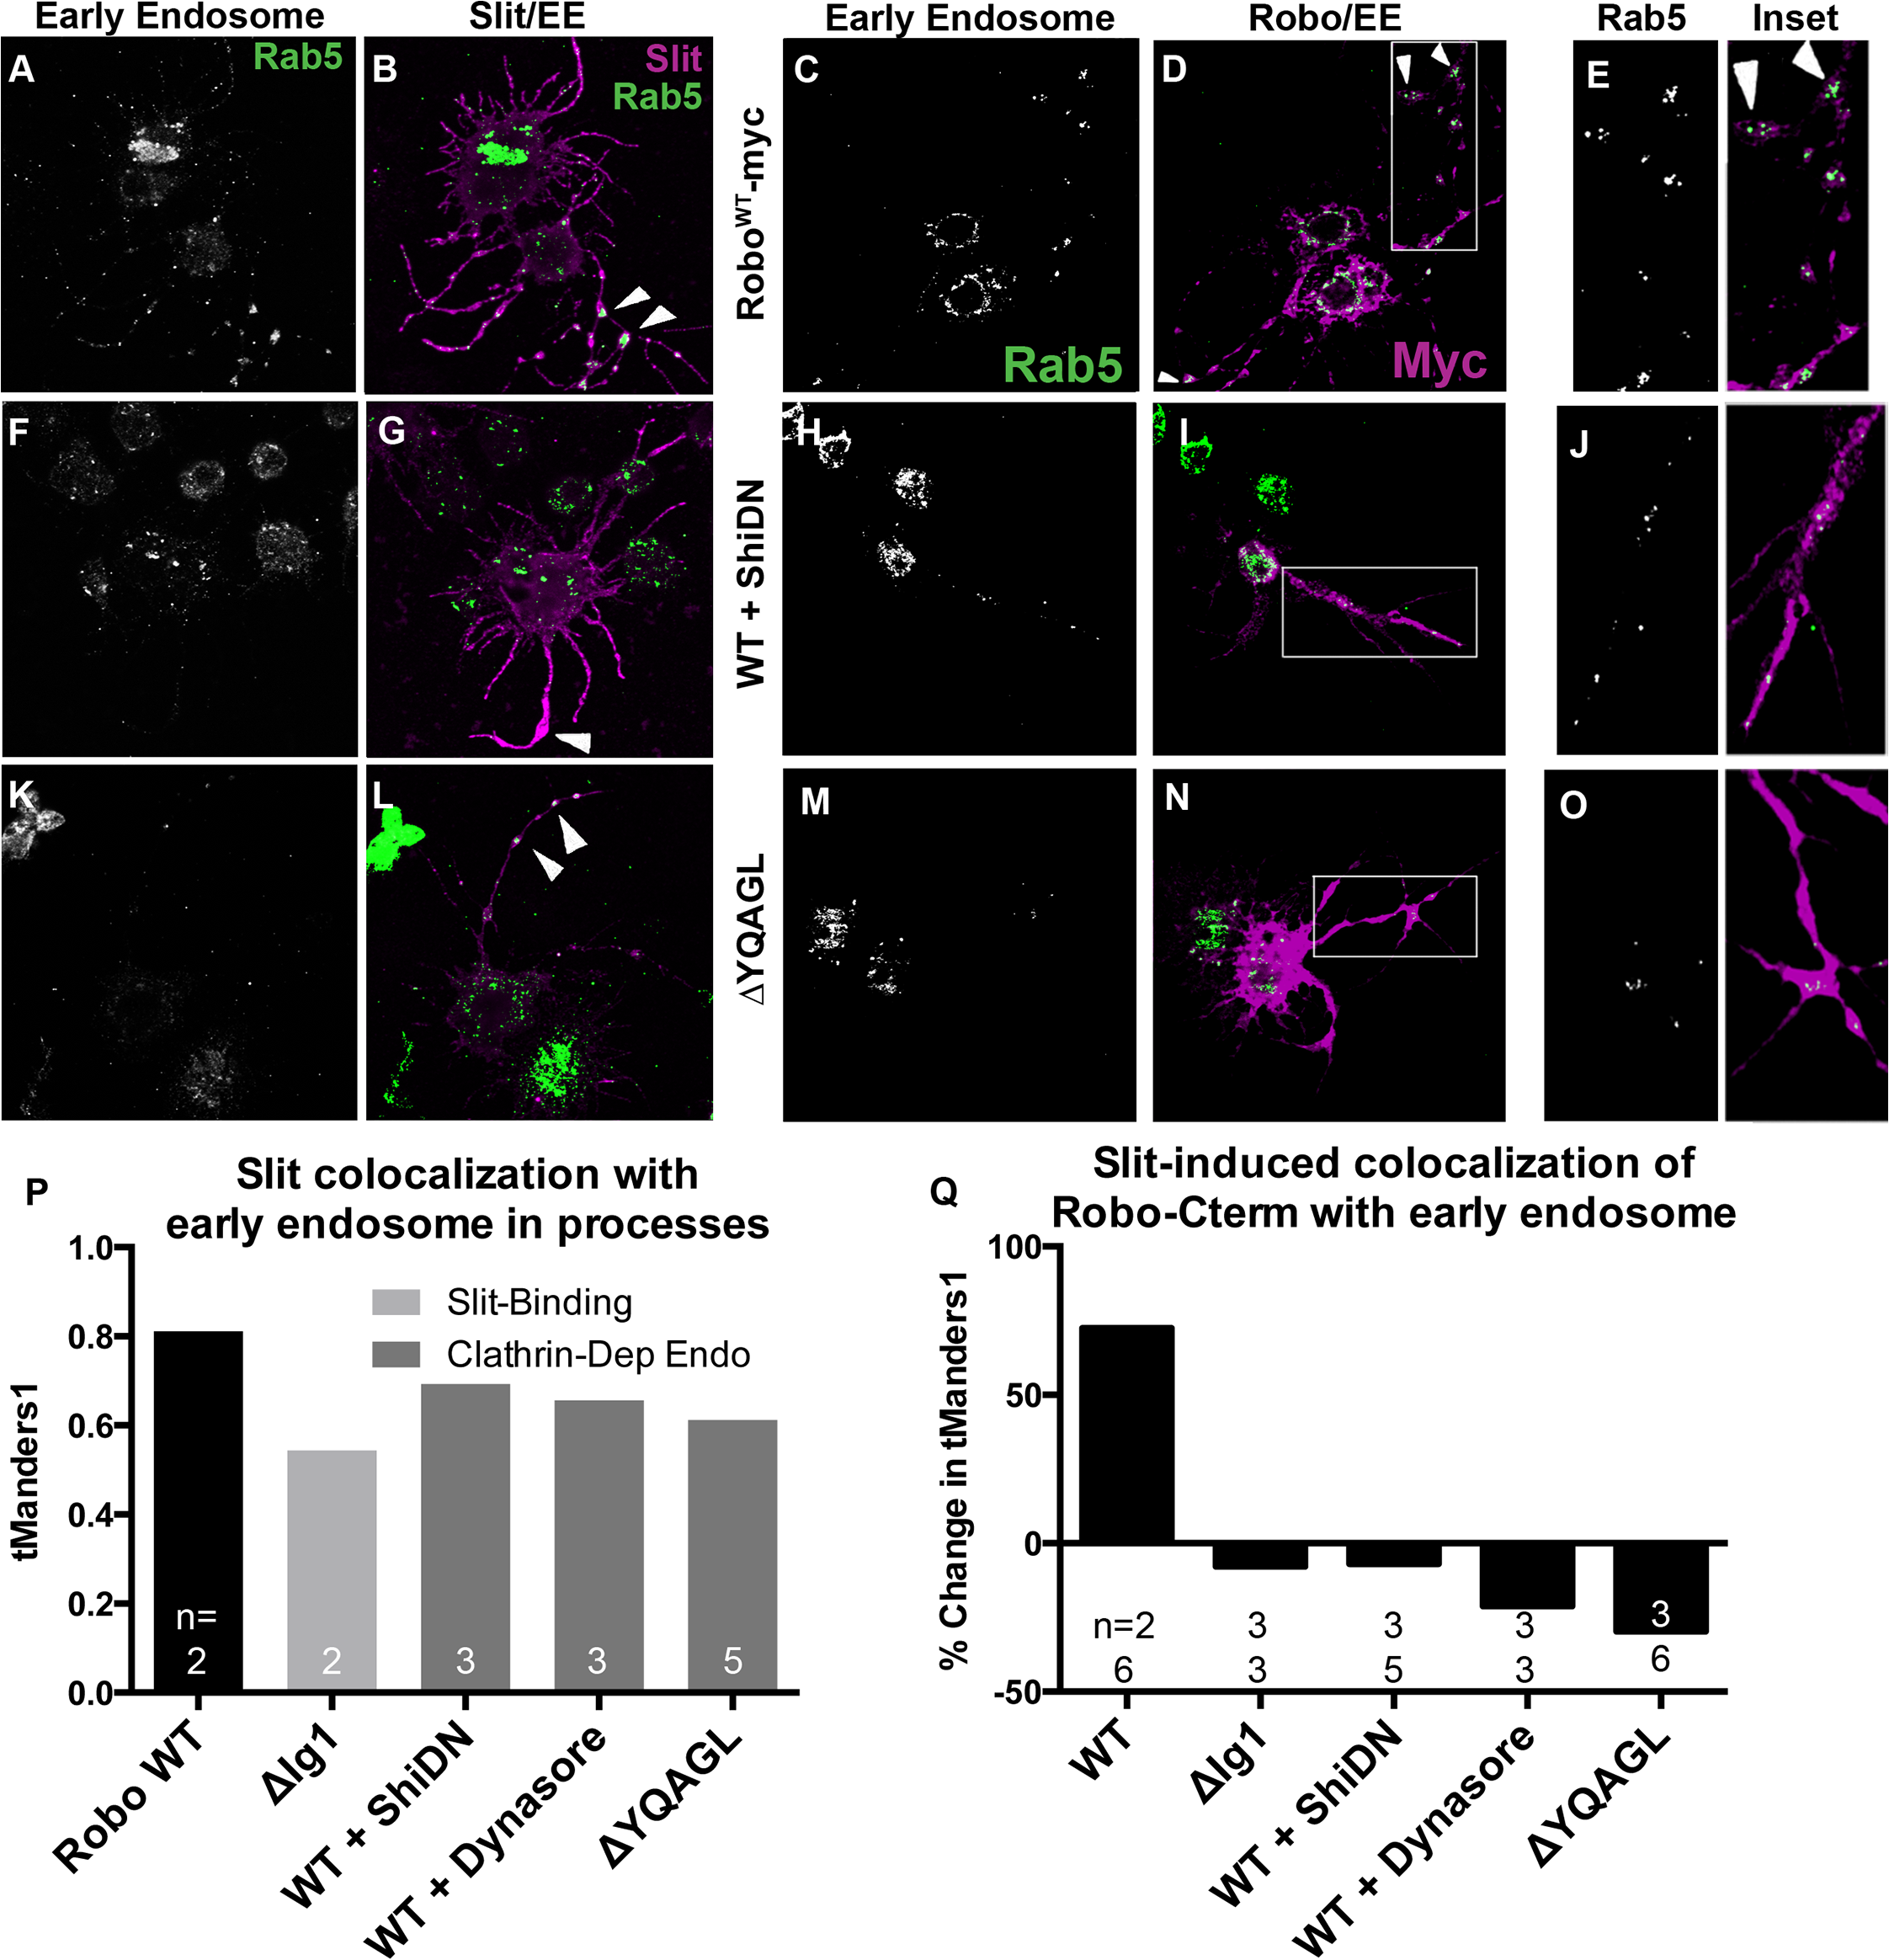 Slit induces Robo colocalization with Rab5 in cell processes.